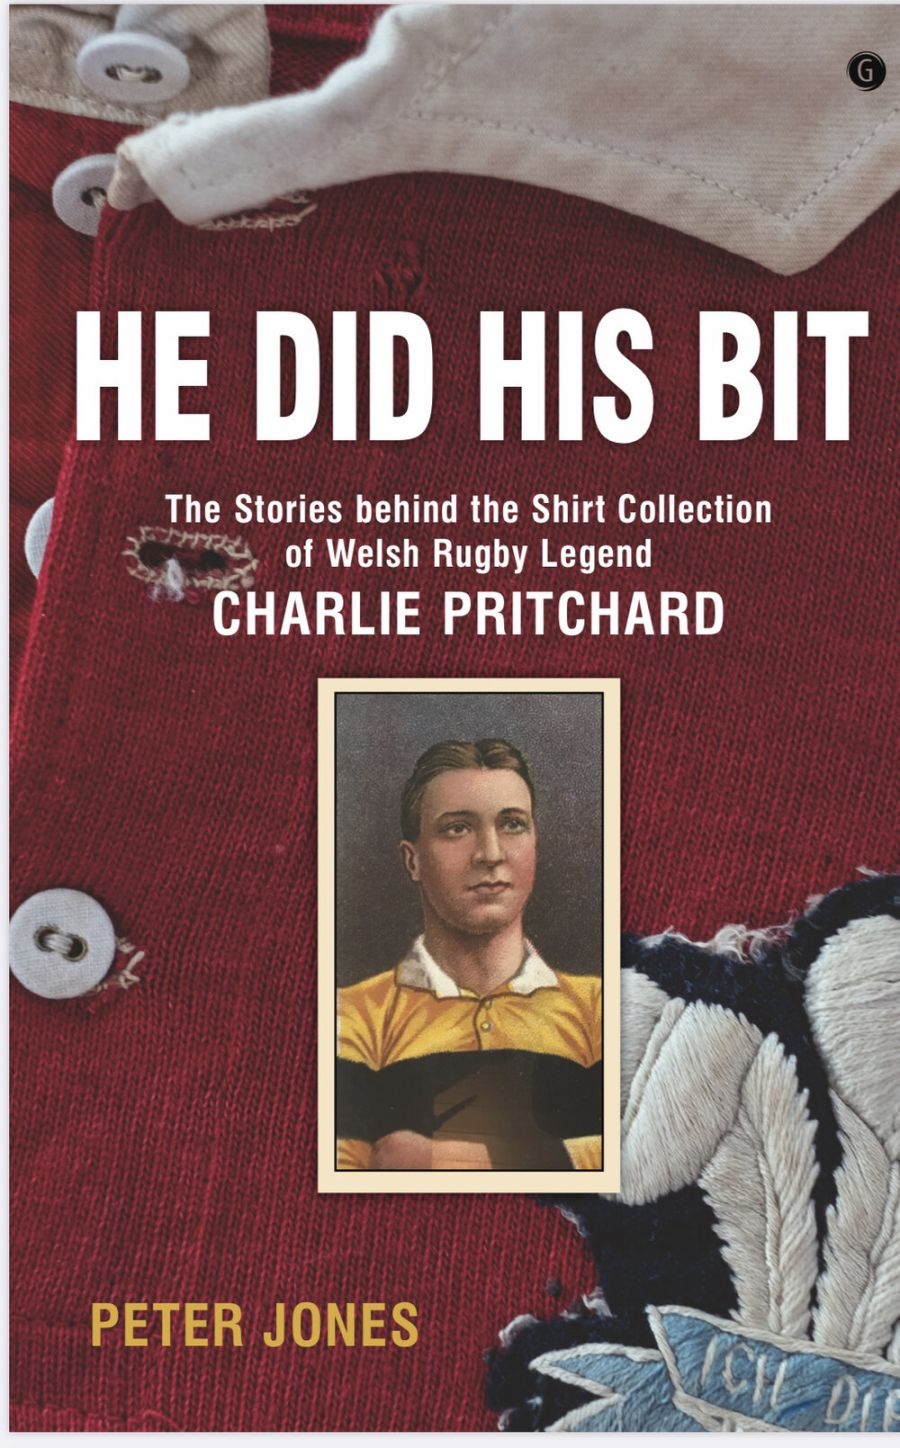 Book - Charlie Pritchard 'He did his bit'